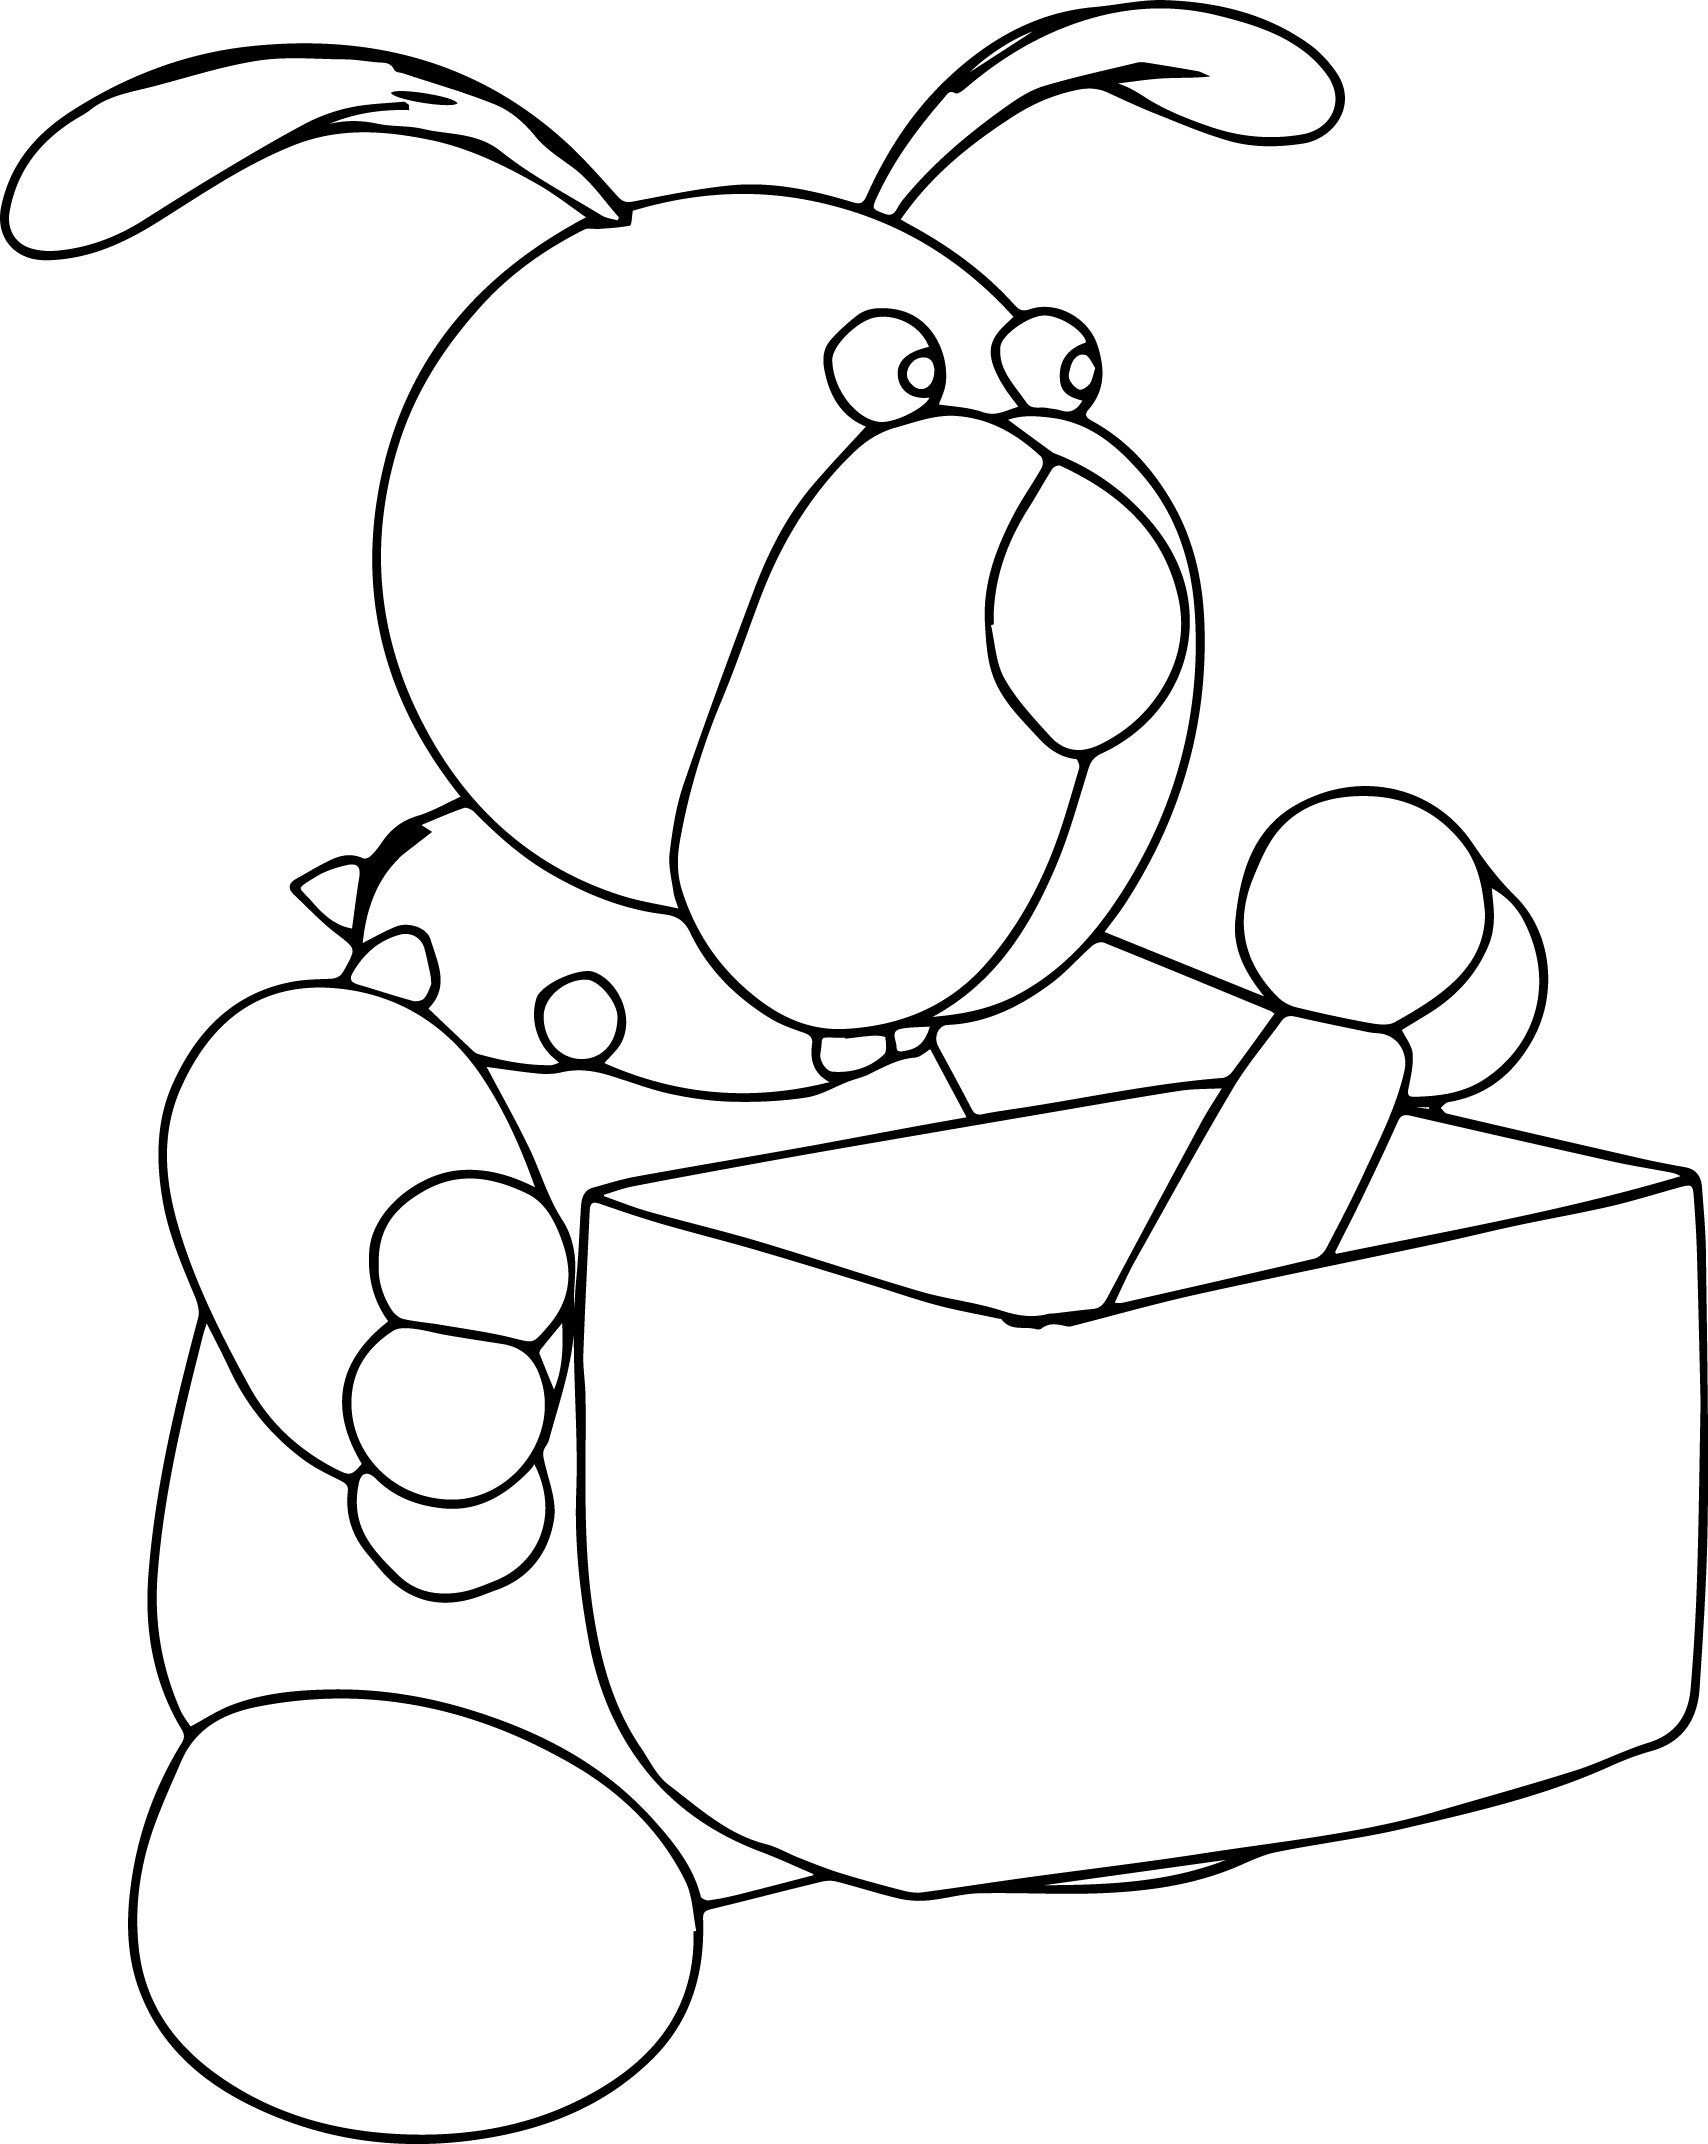 Dog bone box coloring page for Coloring pages of dog bones